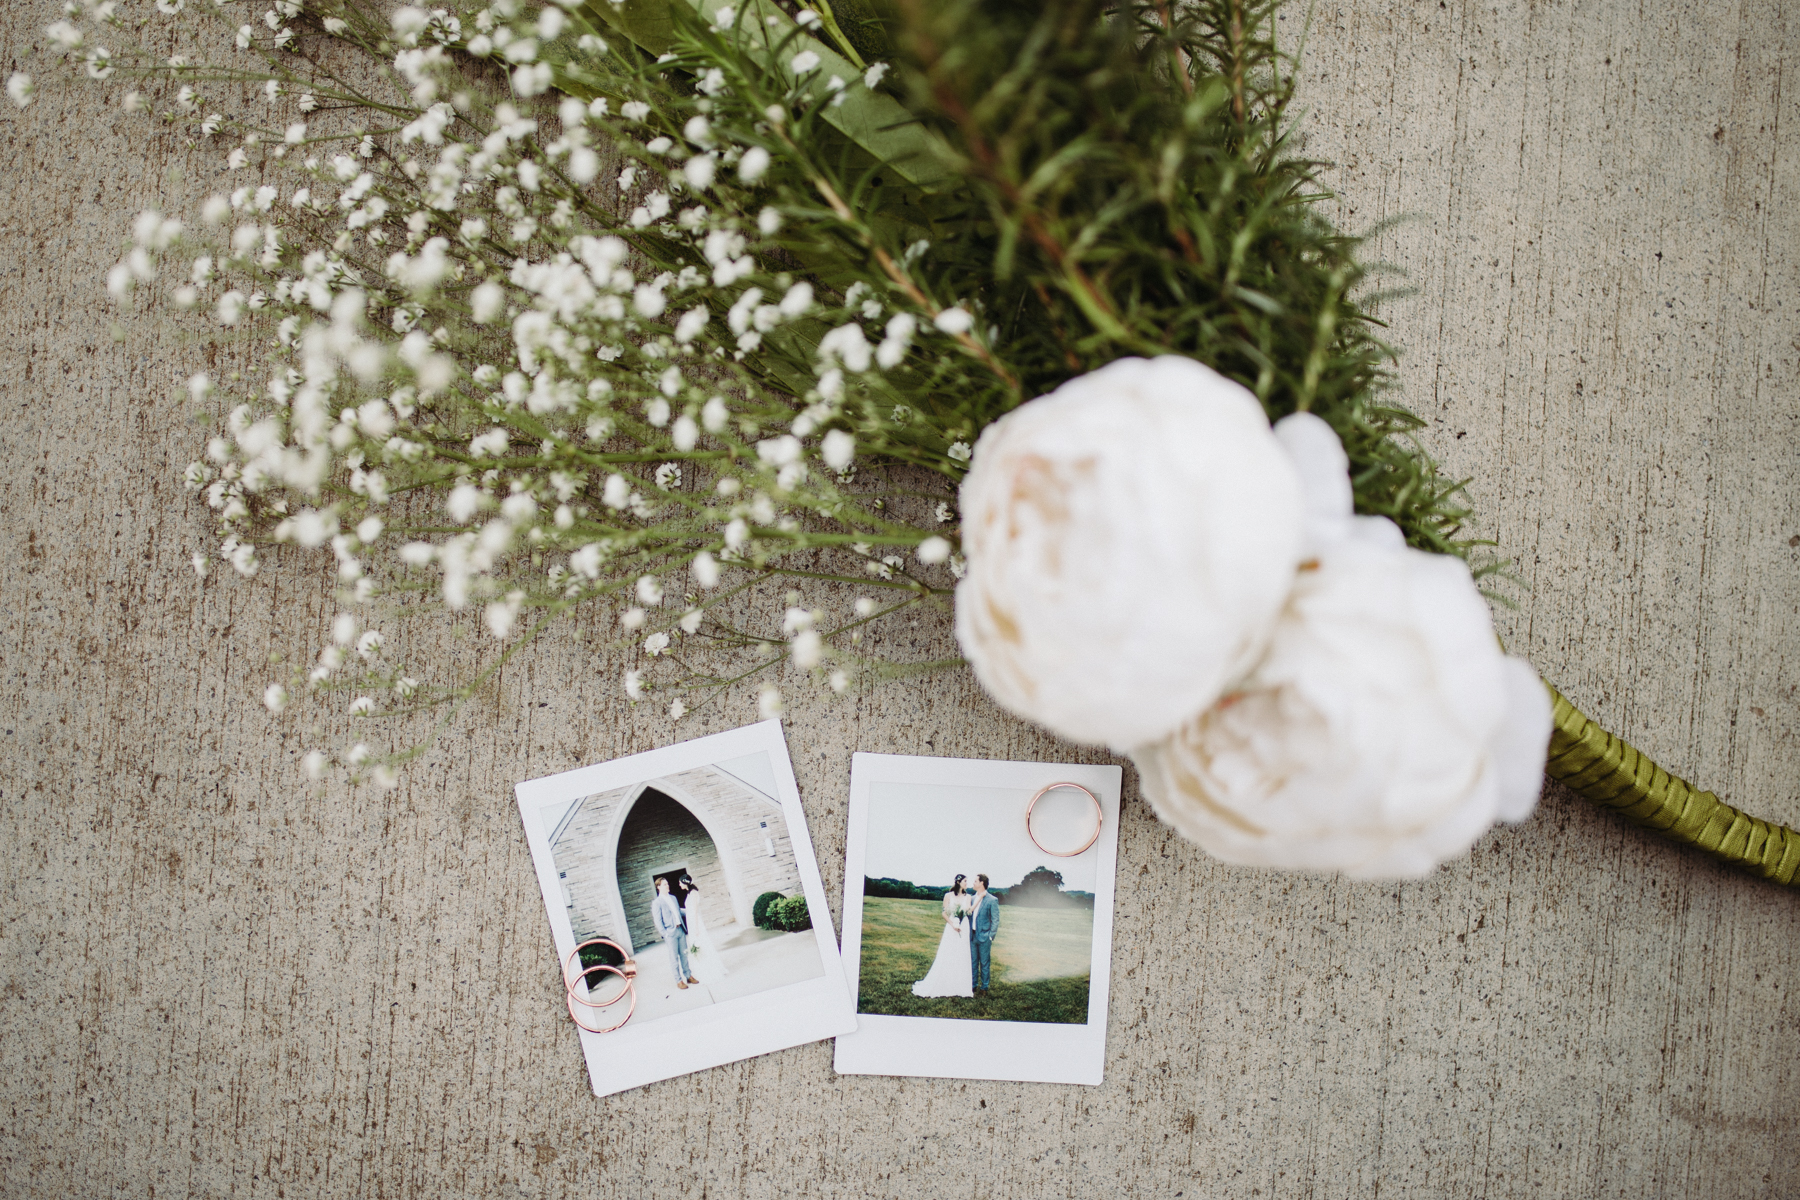 Polaroid photos of a bride and groom before their downtown knoxville wedding at redeemer church